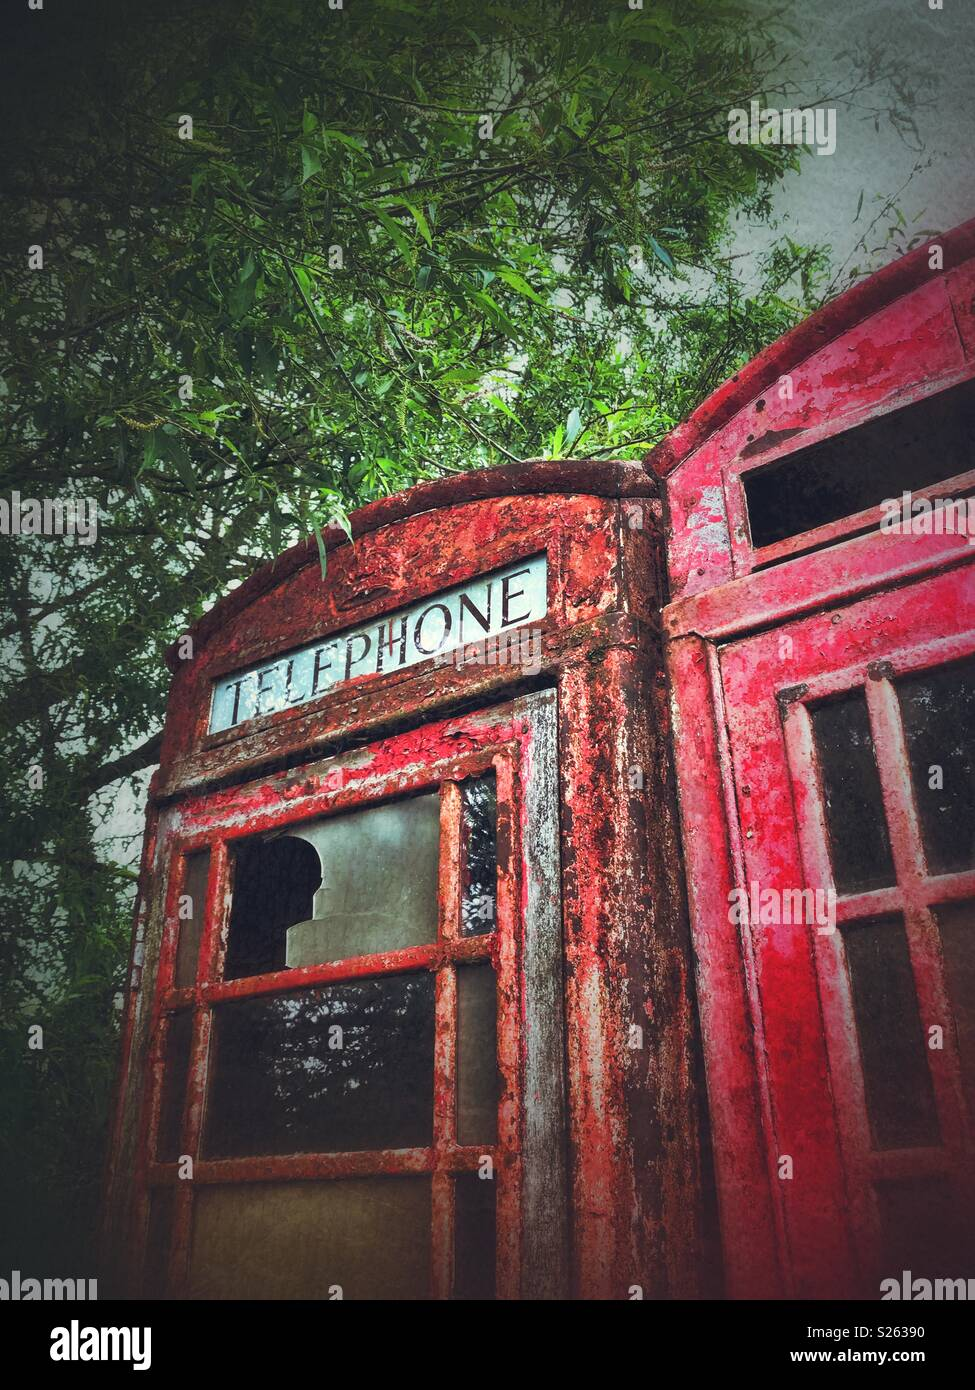 A pair of old telephone boxes - Stock Image